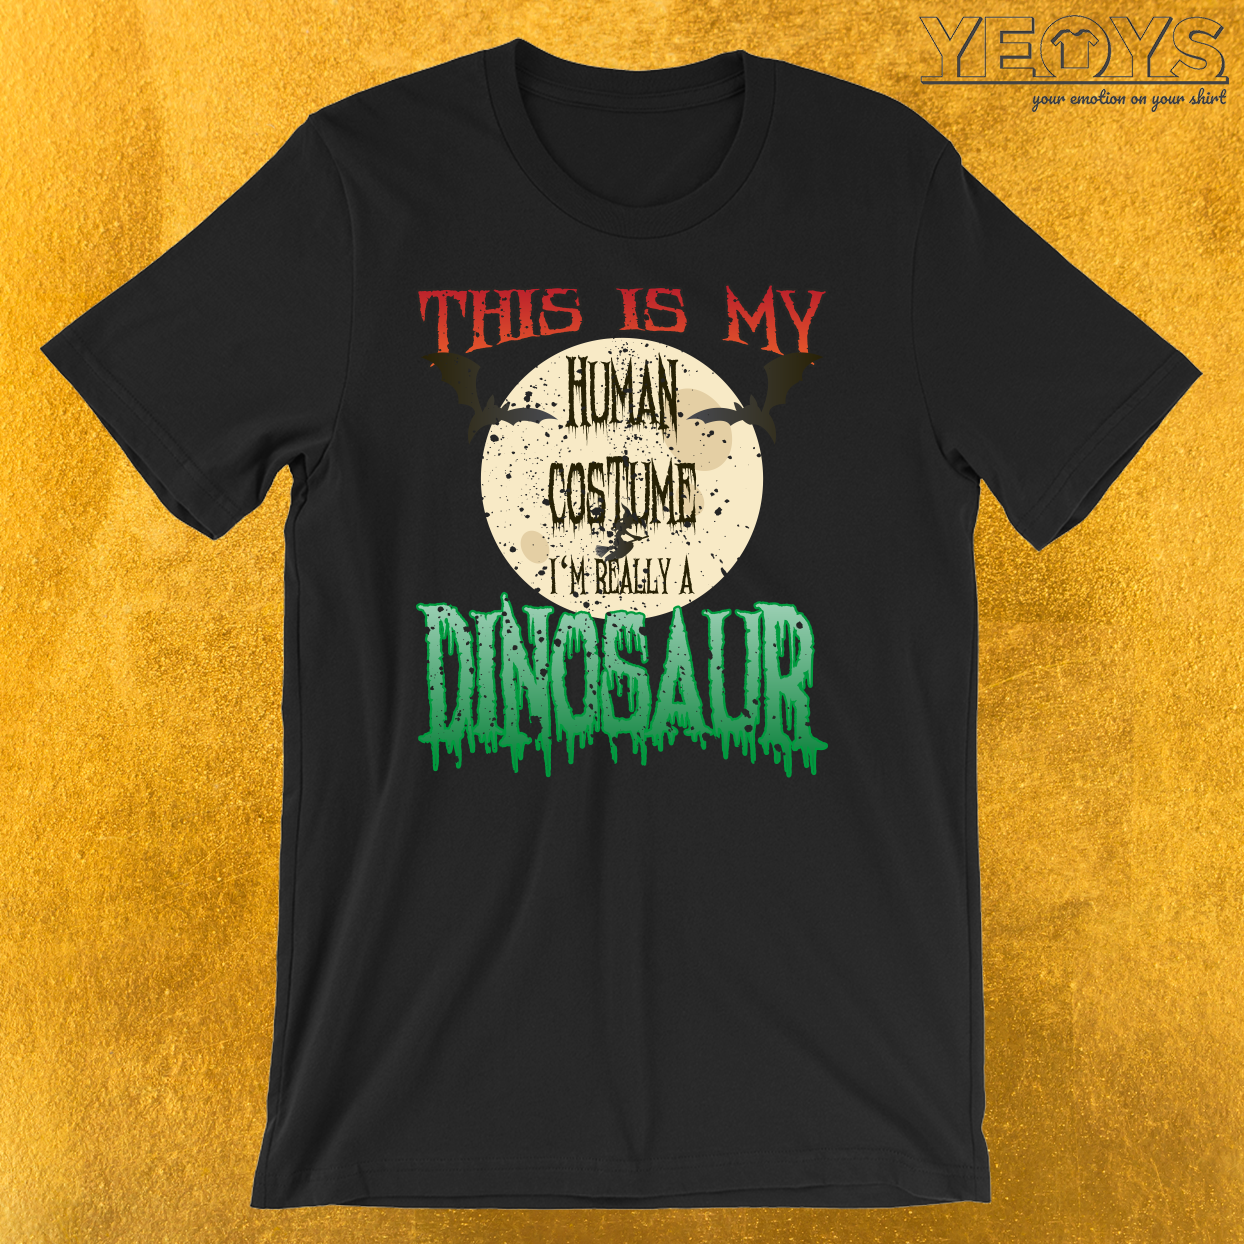 This Is My Human Costume I'm Really A Dinosaur T-Shirt